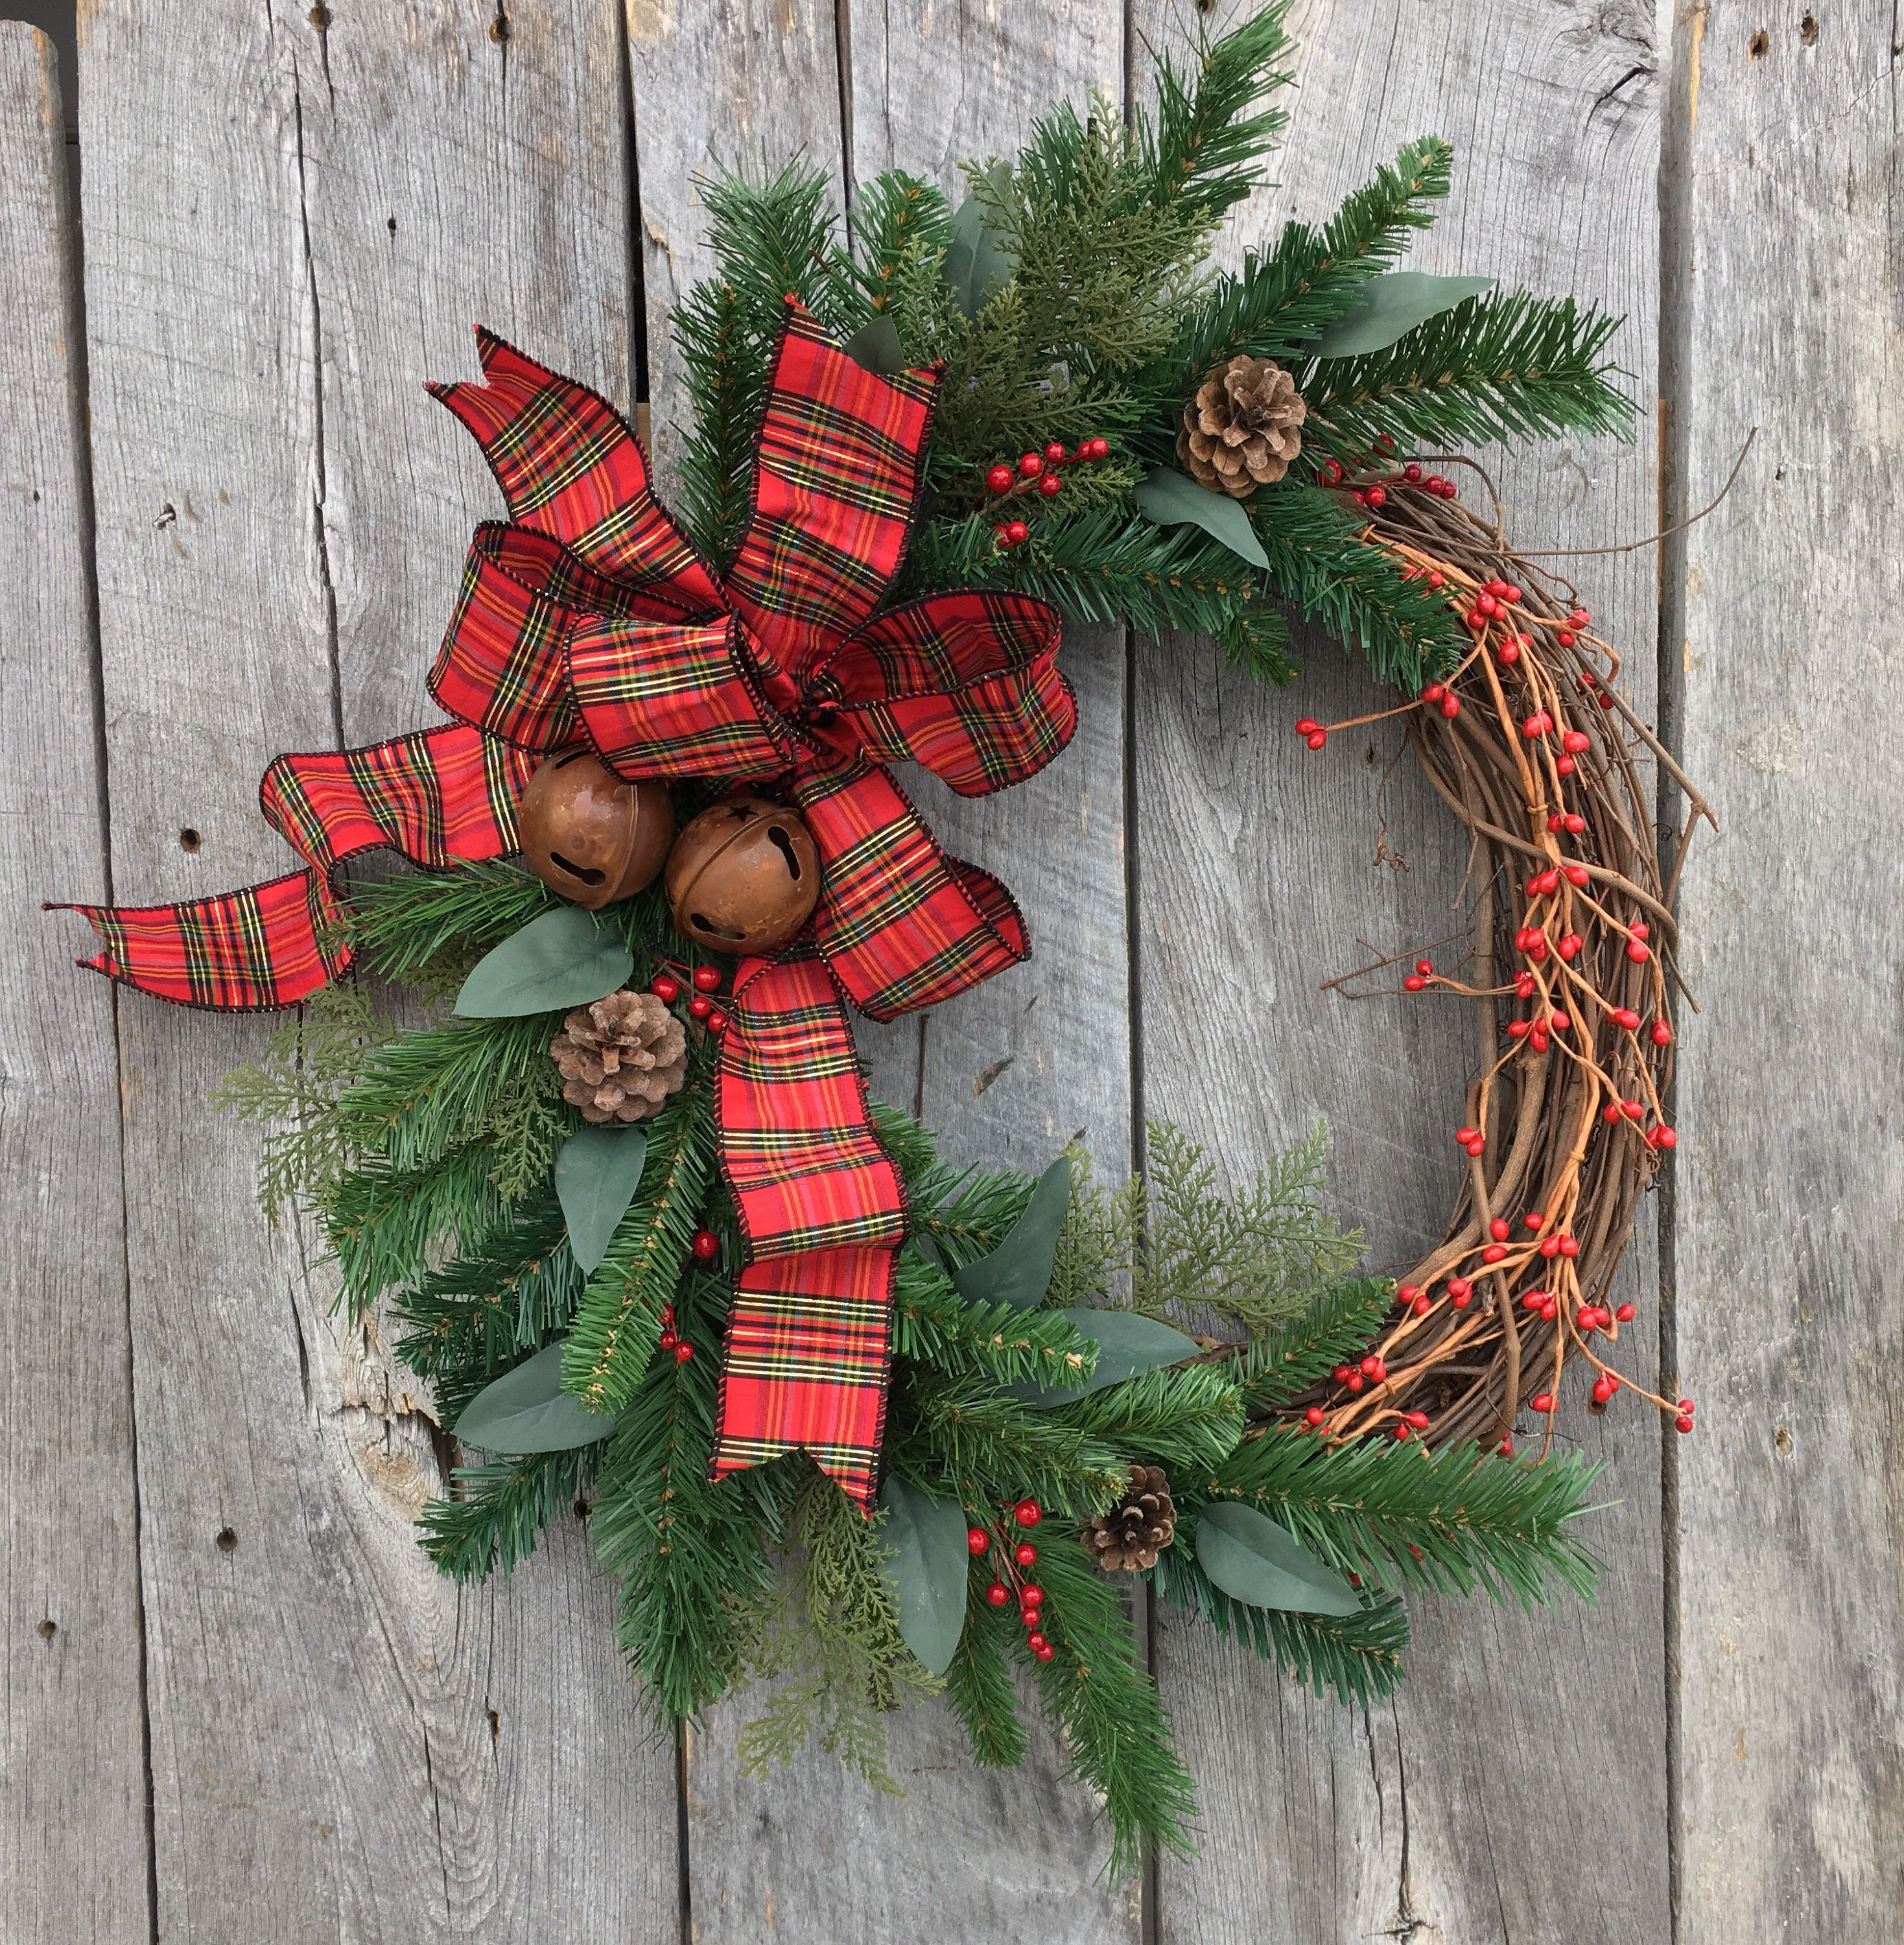 Christmas Wreath For Front Door, Holiday Wreath, Christmas Door Wreath, Artificial  Wreath, Christmas Grapevine Wreath, Tartan Wreath, Rustic